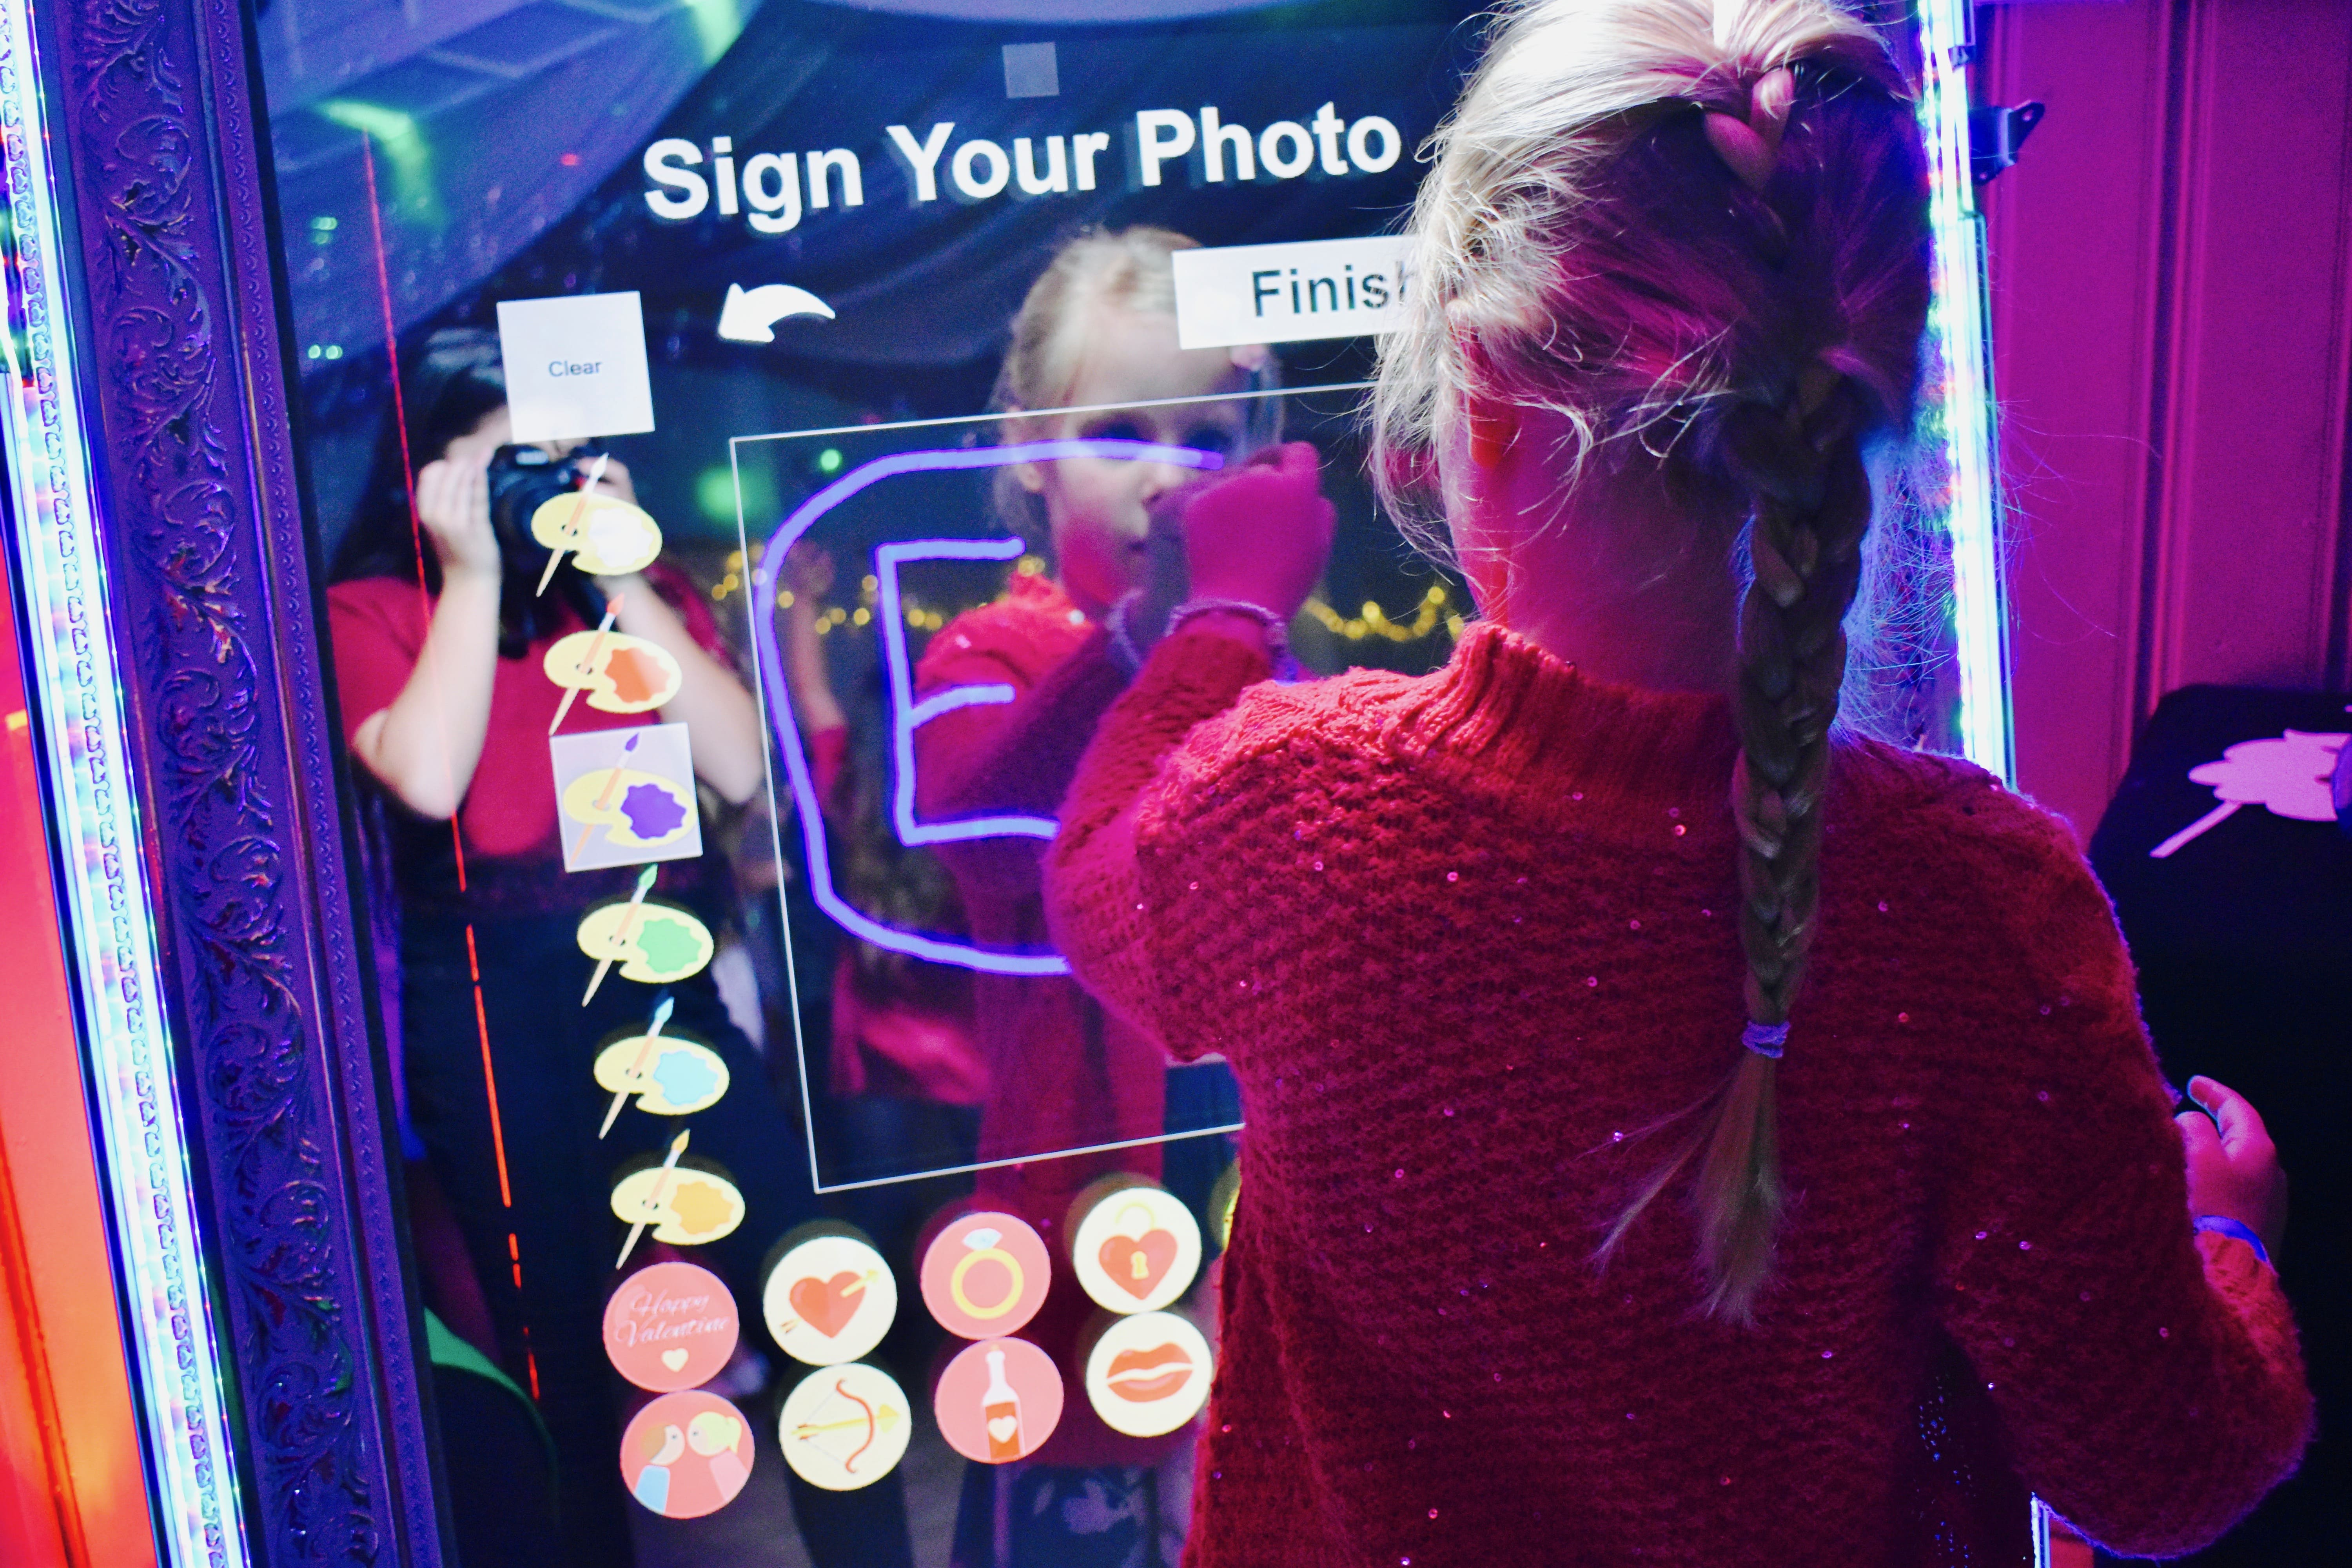 Magic mirror photo booth in London - Moji Entertainer